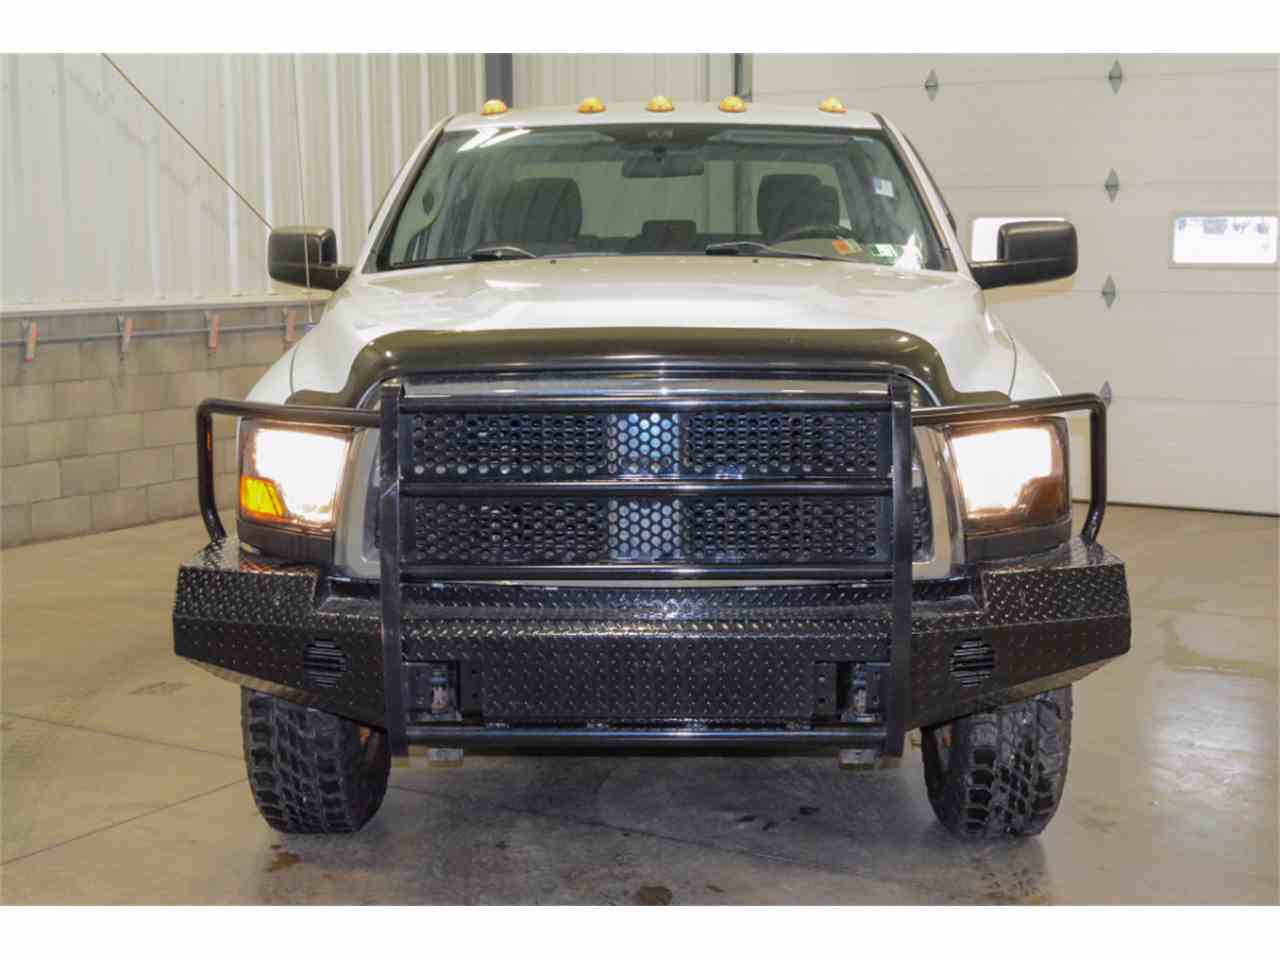 Large Picture of '11 Dodge Ram 2500 located in Salem Ohio - $9,988.00 Offered by John Kufleitner's Galleria - ME58